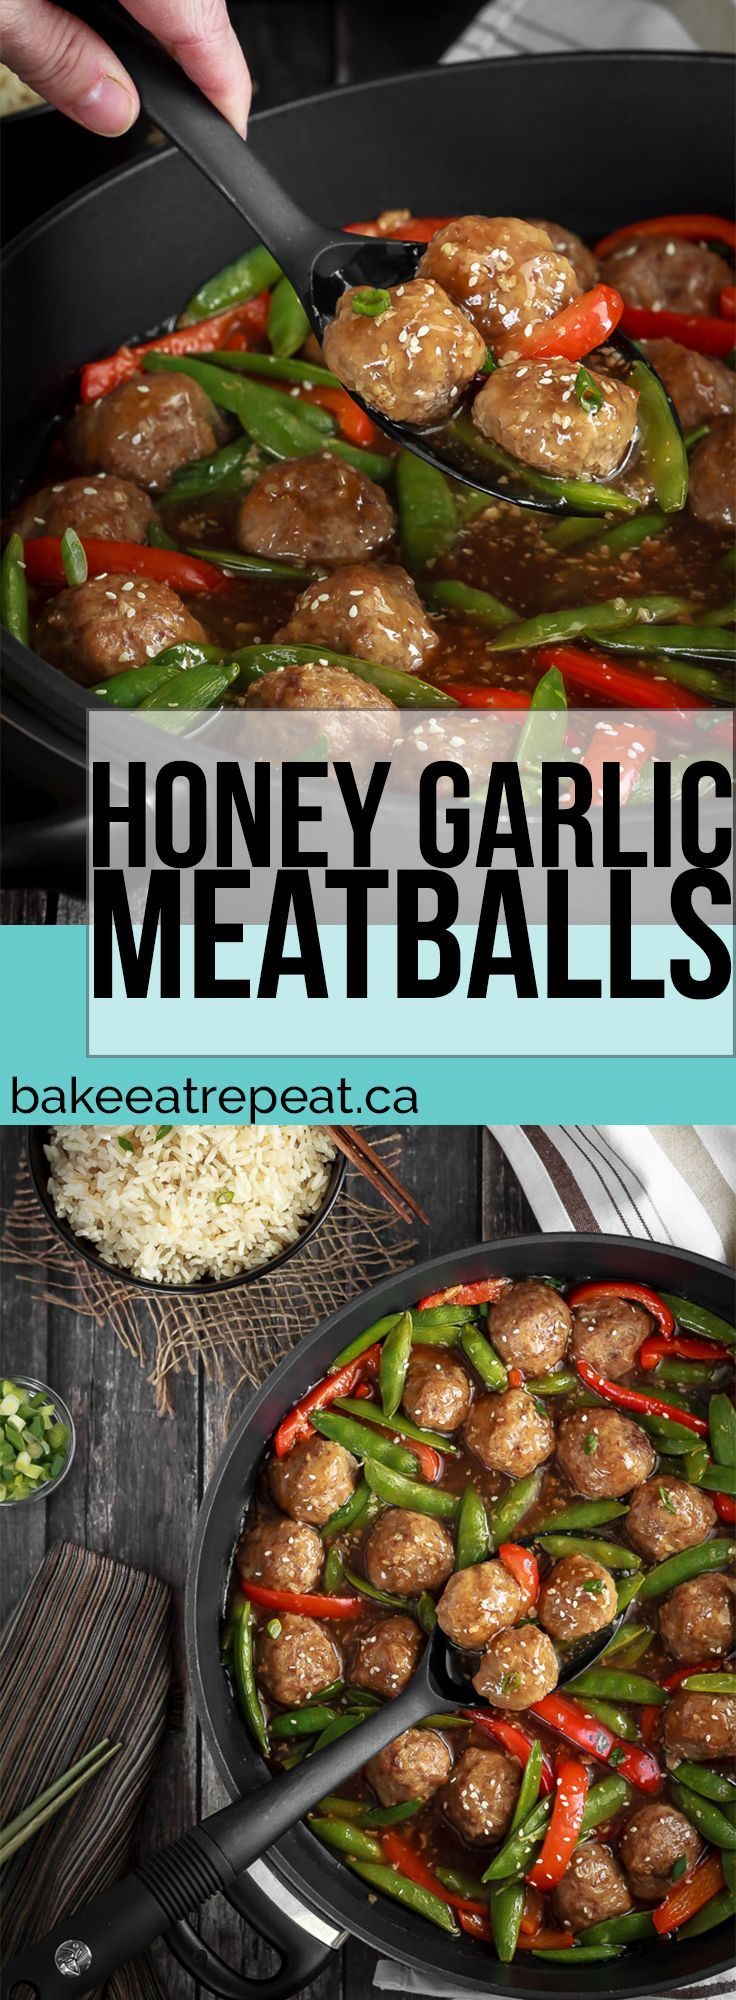 These honey garlic meatballs are easy to make and the whole family will love them! Serve over rice or quinoa for an easy and tasty meal! #meatballs #30minutemeal #supper